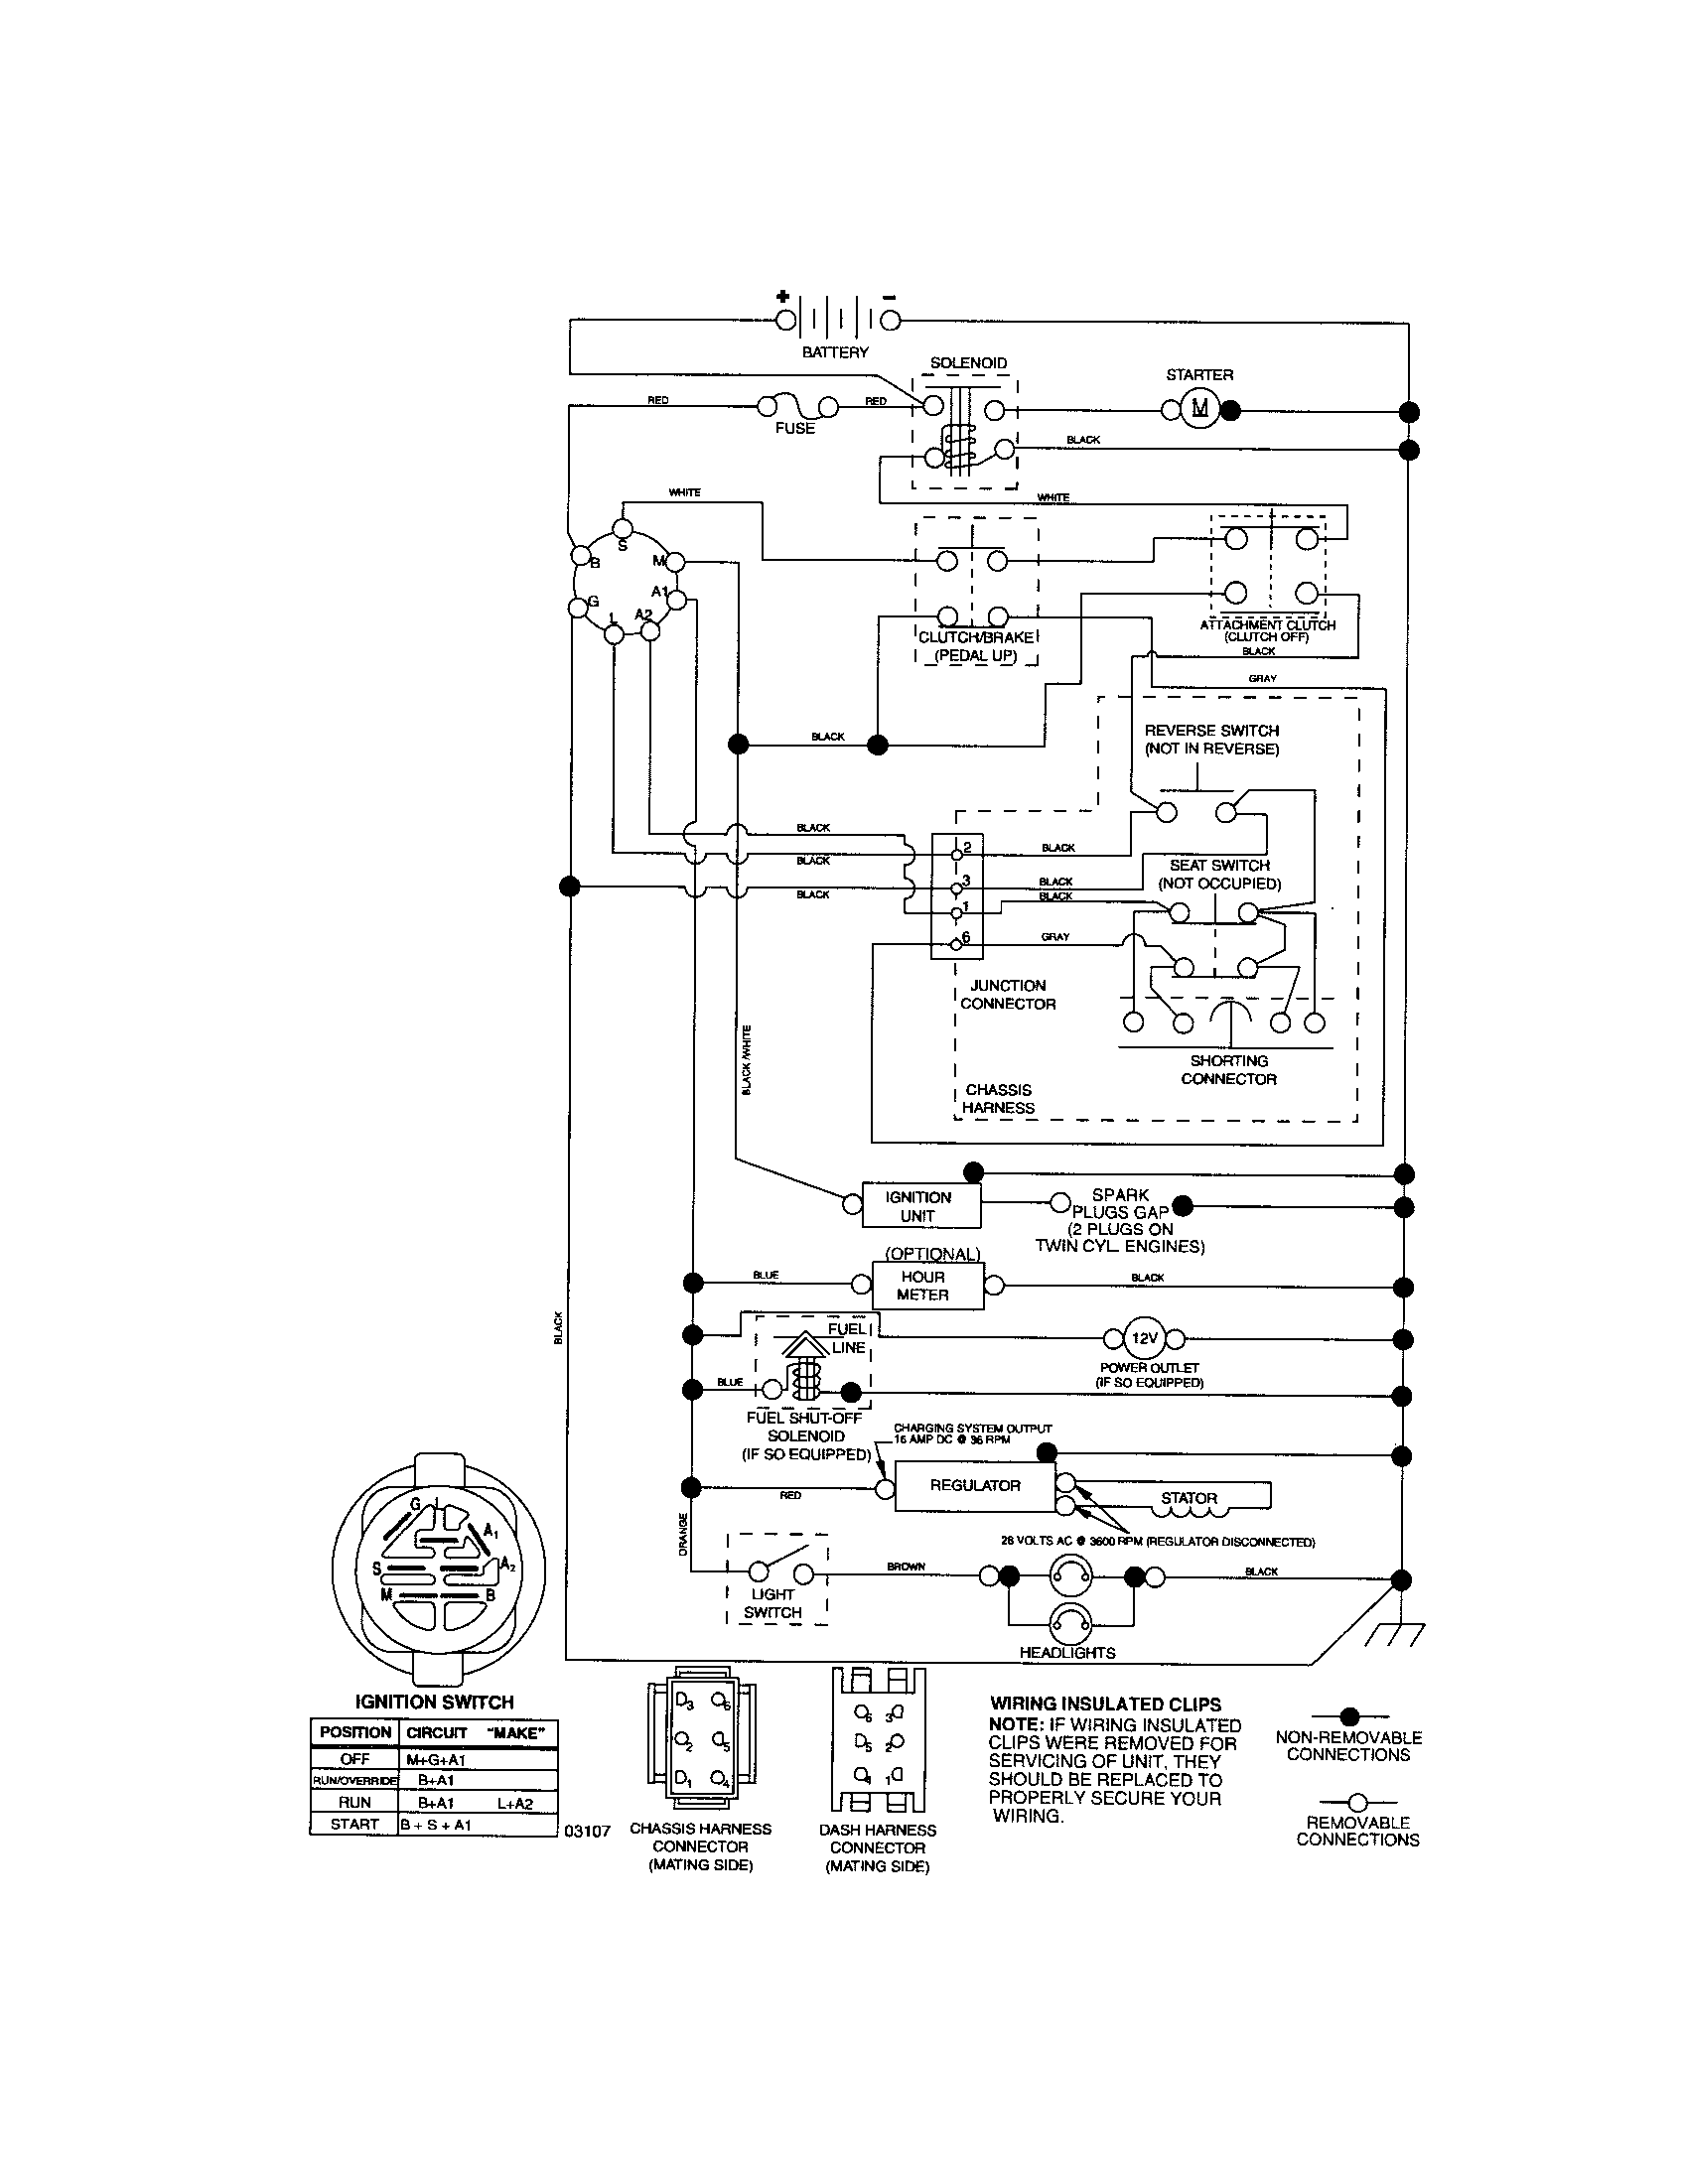 6af5f1447fd13c8443376822ddc1e105 craftsman riding mower electrical diagram wiring diagram wiring diagram for sears riding mower at suagrazia.org